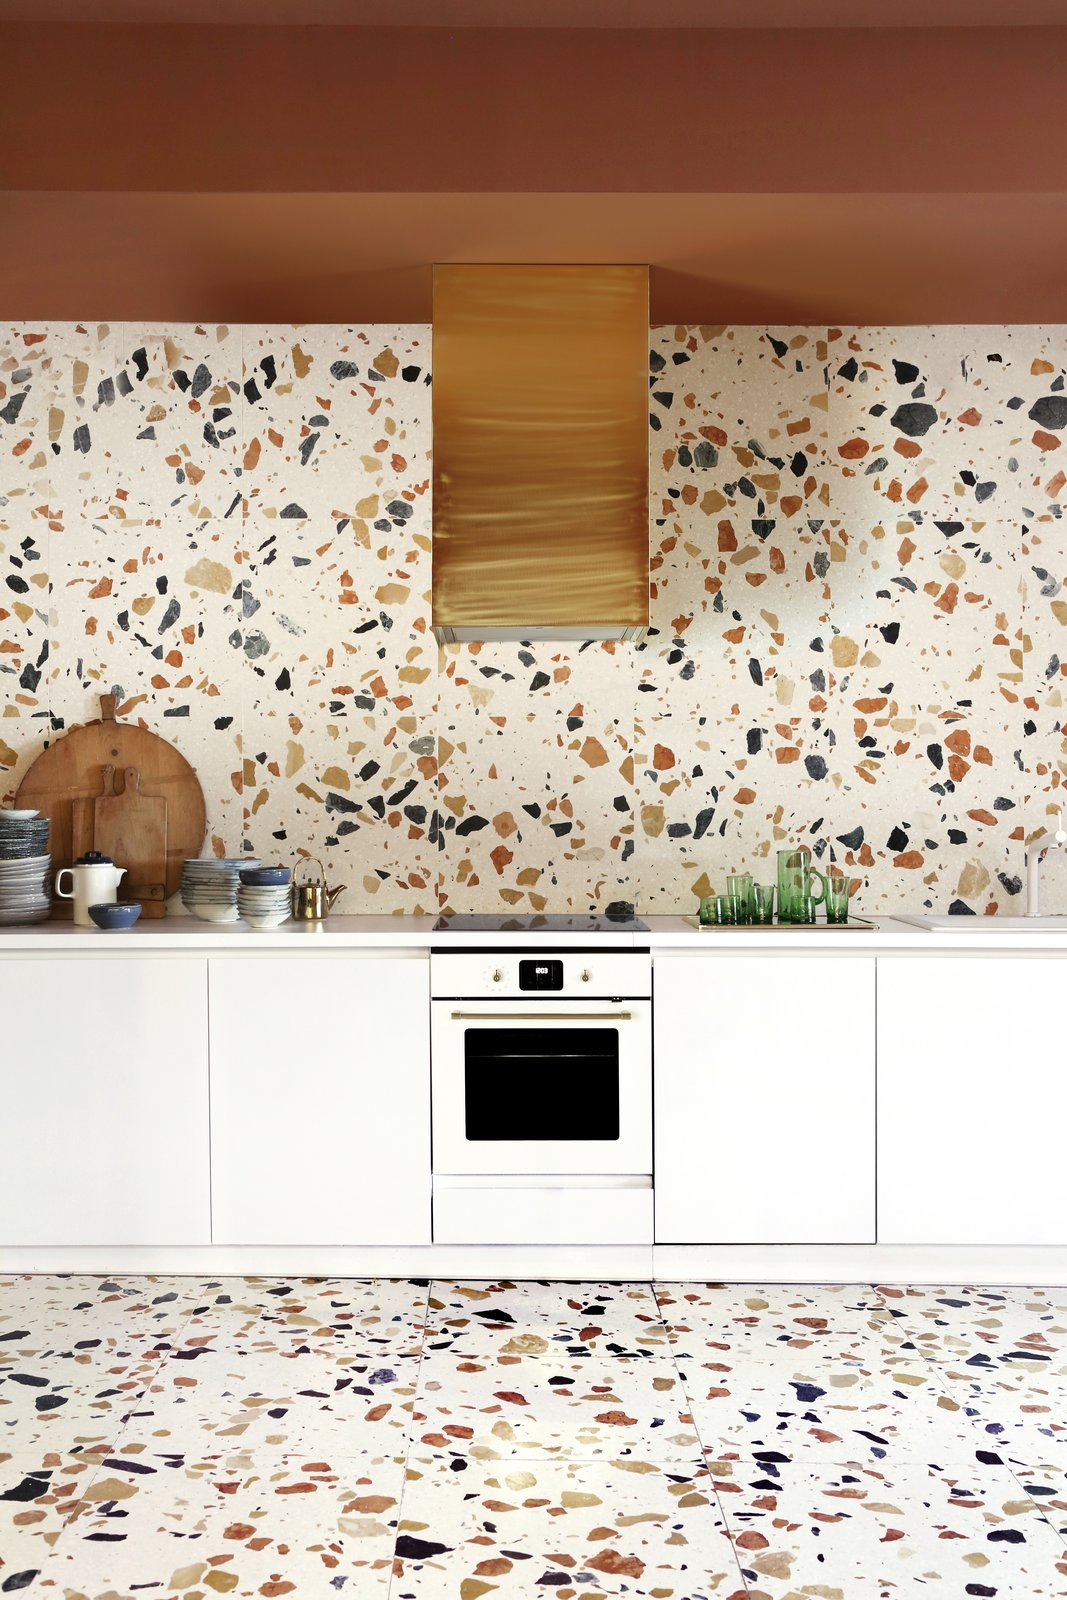 Top 6 Backsplash Materials To Consider For Your Kitchen